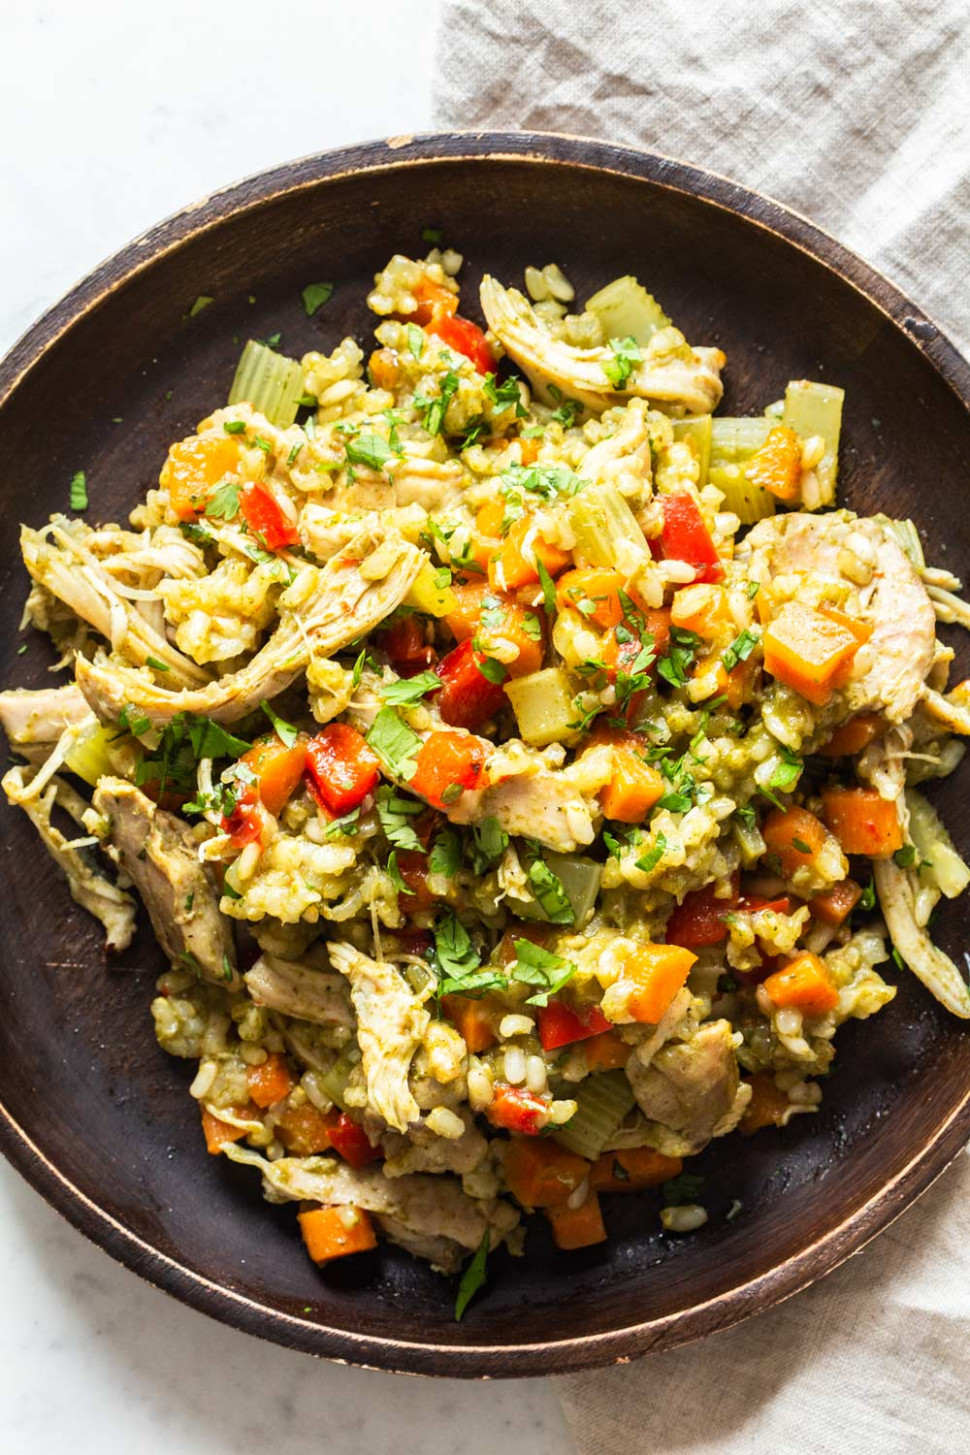 Healthy Crock Pot Chicken and Rice - Green Healthy Cooking - recipes in crock pot with chicken